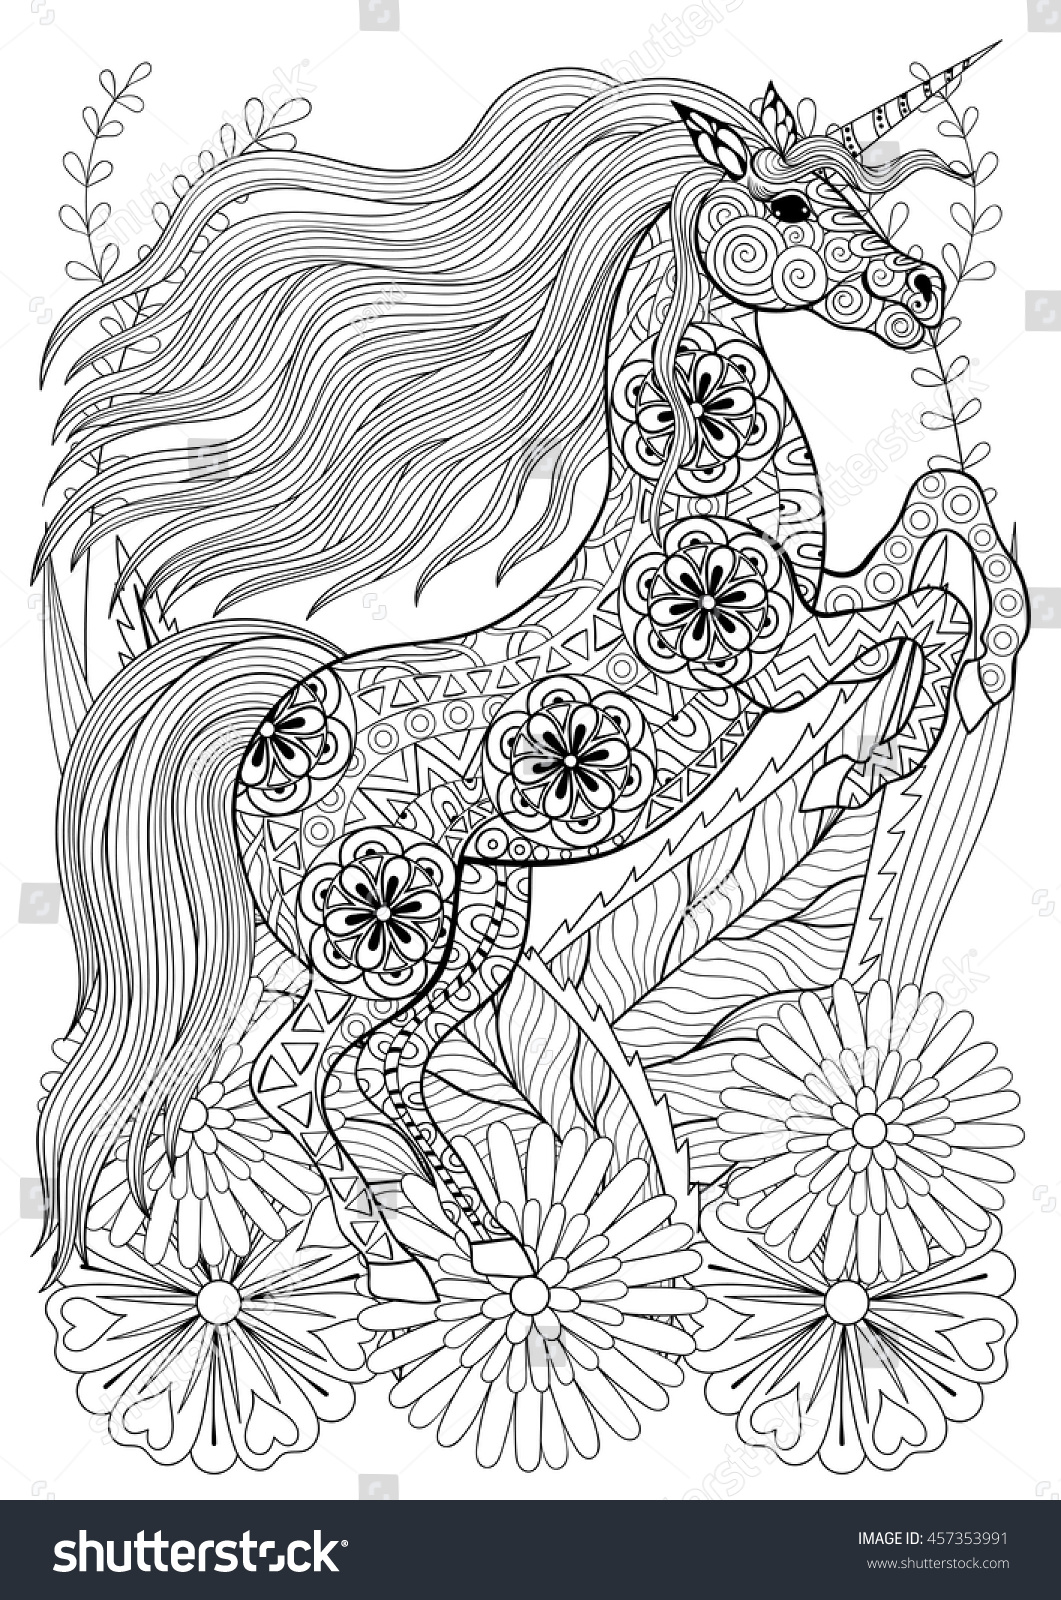 Unicorn face coloring page - Zentangle Stylized Unicorn With Flowers Hand Drawn Ethnic Animal For Adult Coloring Pages Art